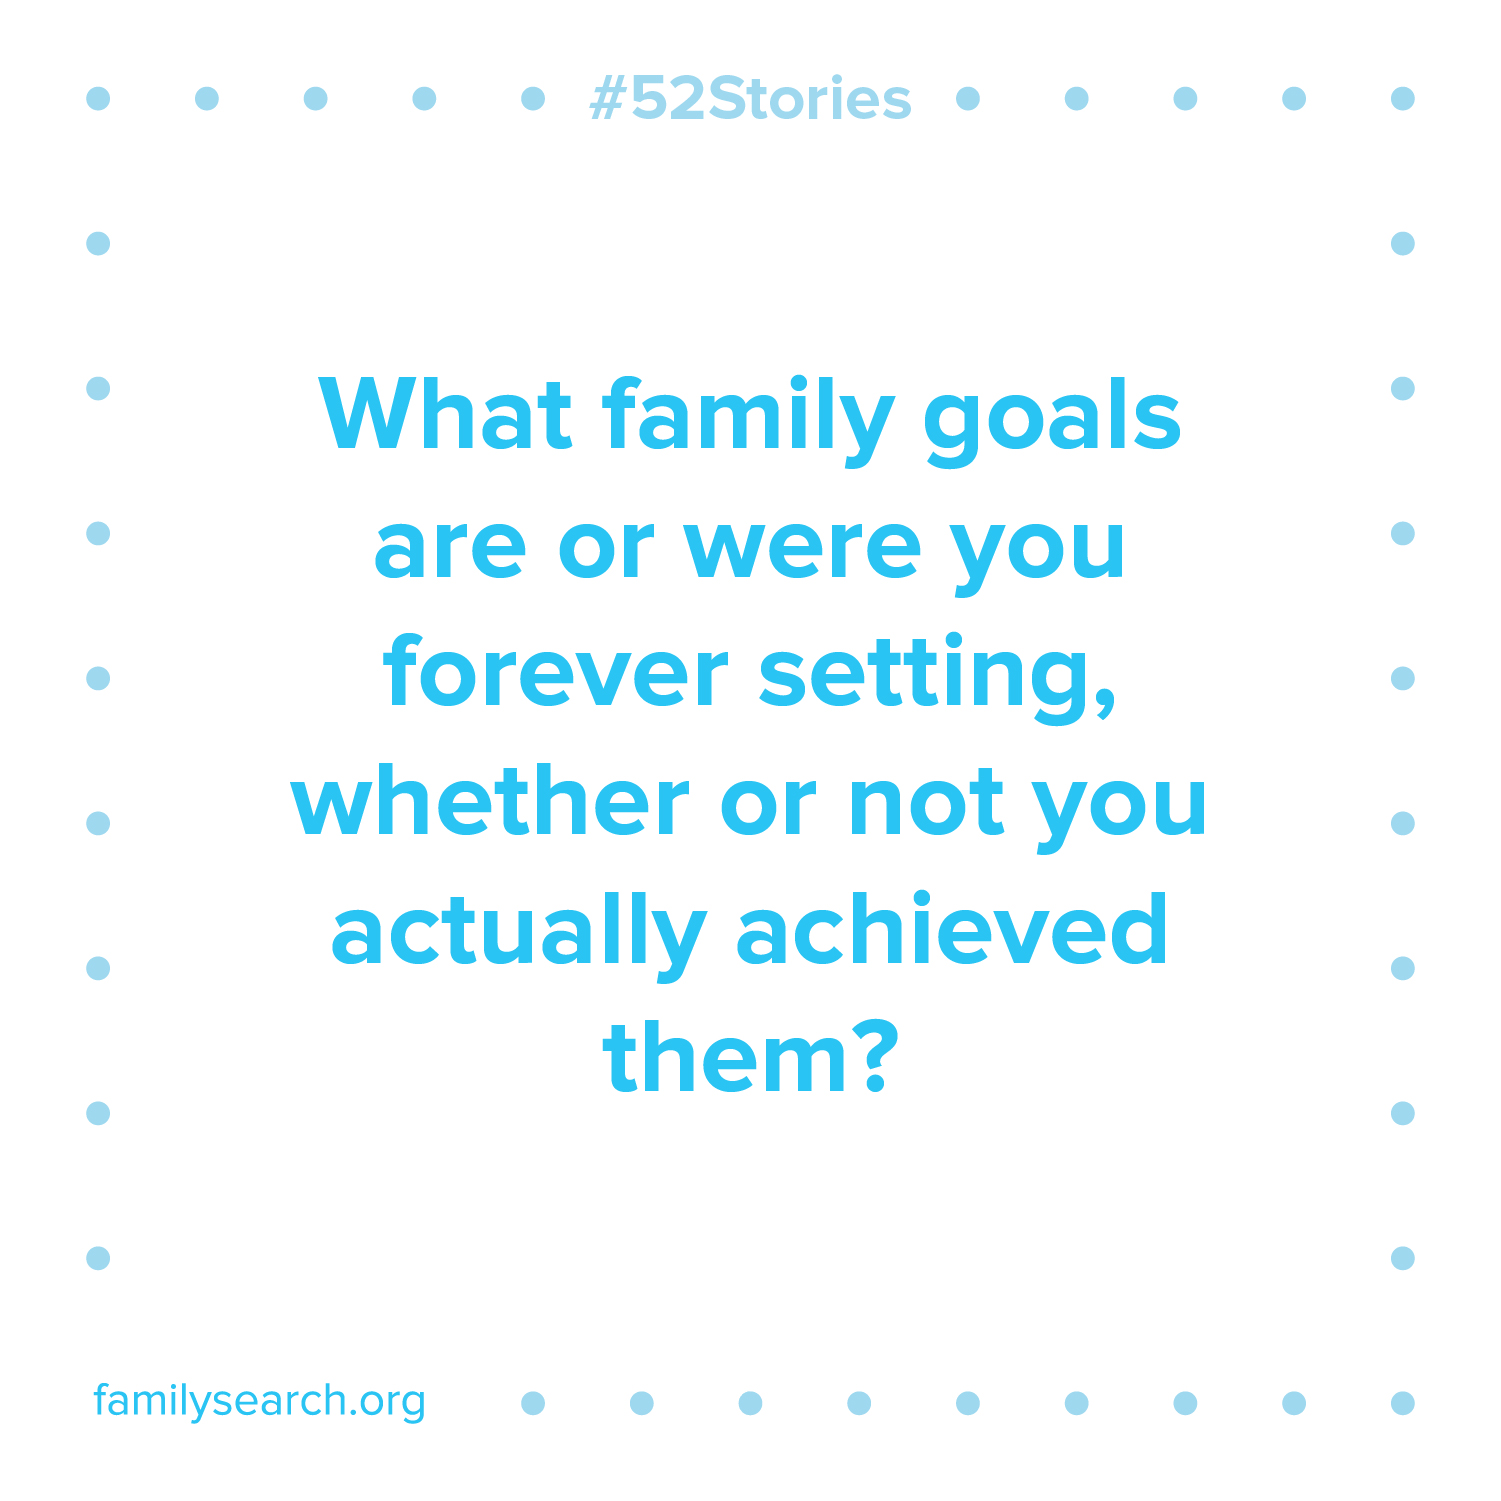 Answer one question per week as part of the #52stories project from FamilySearch.